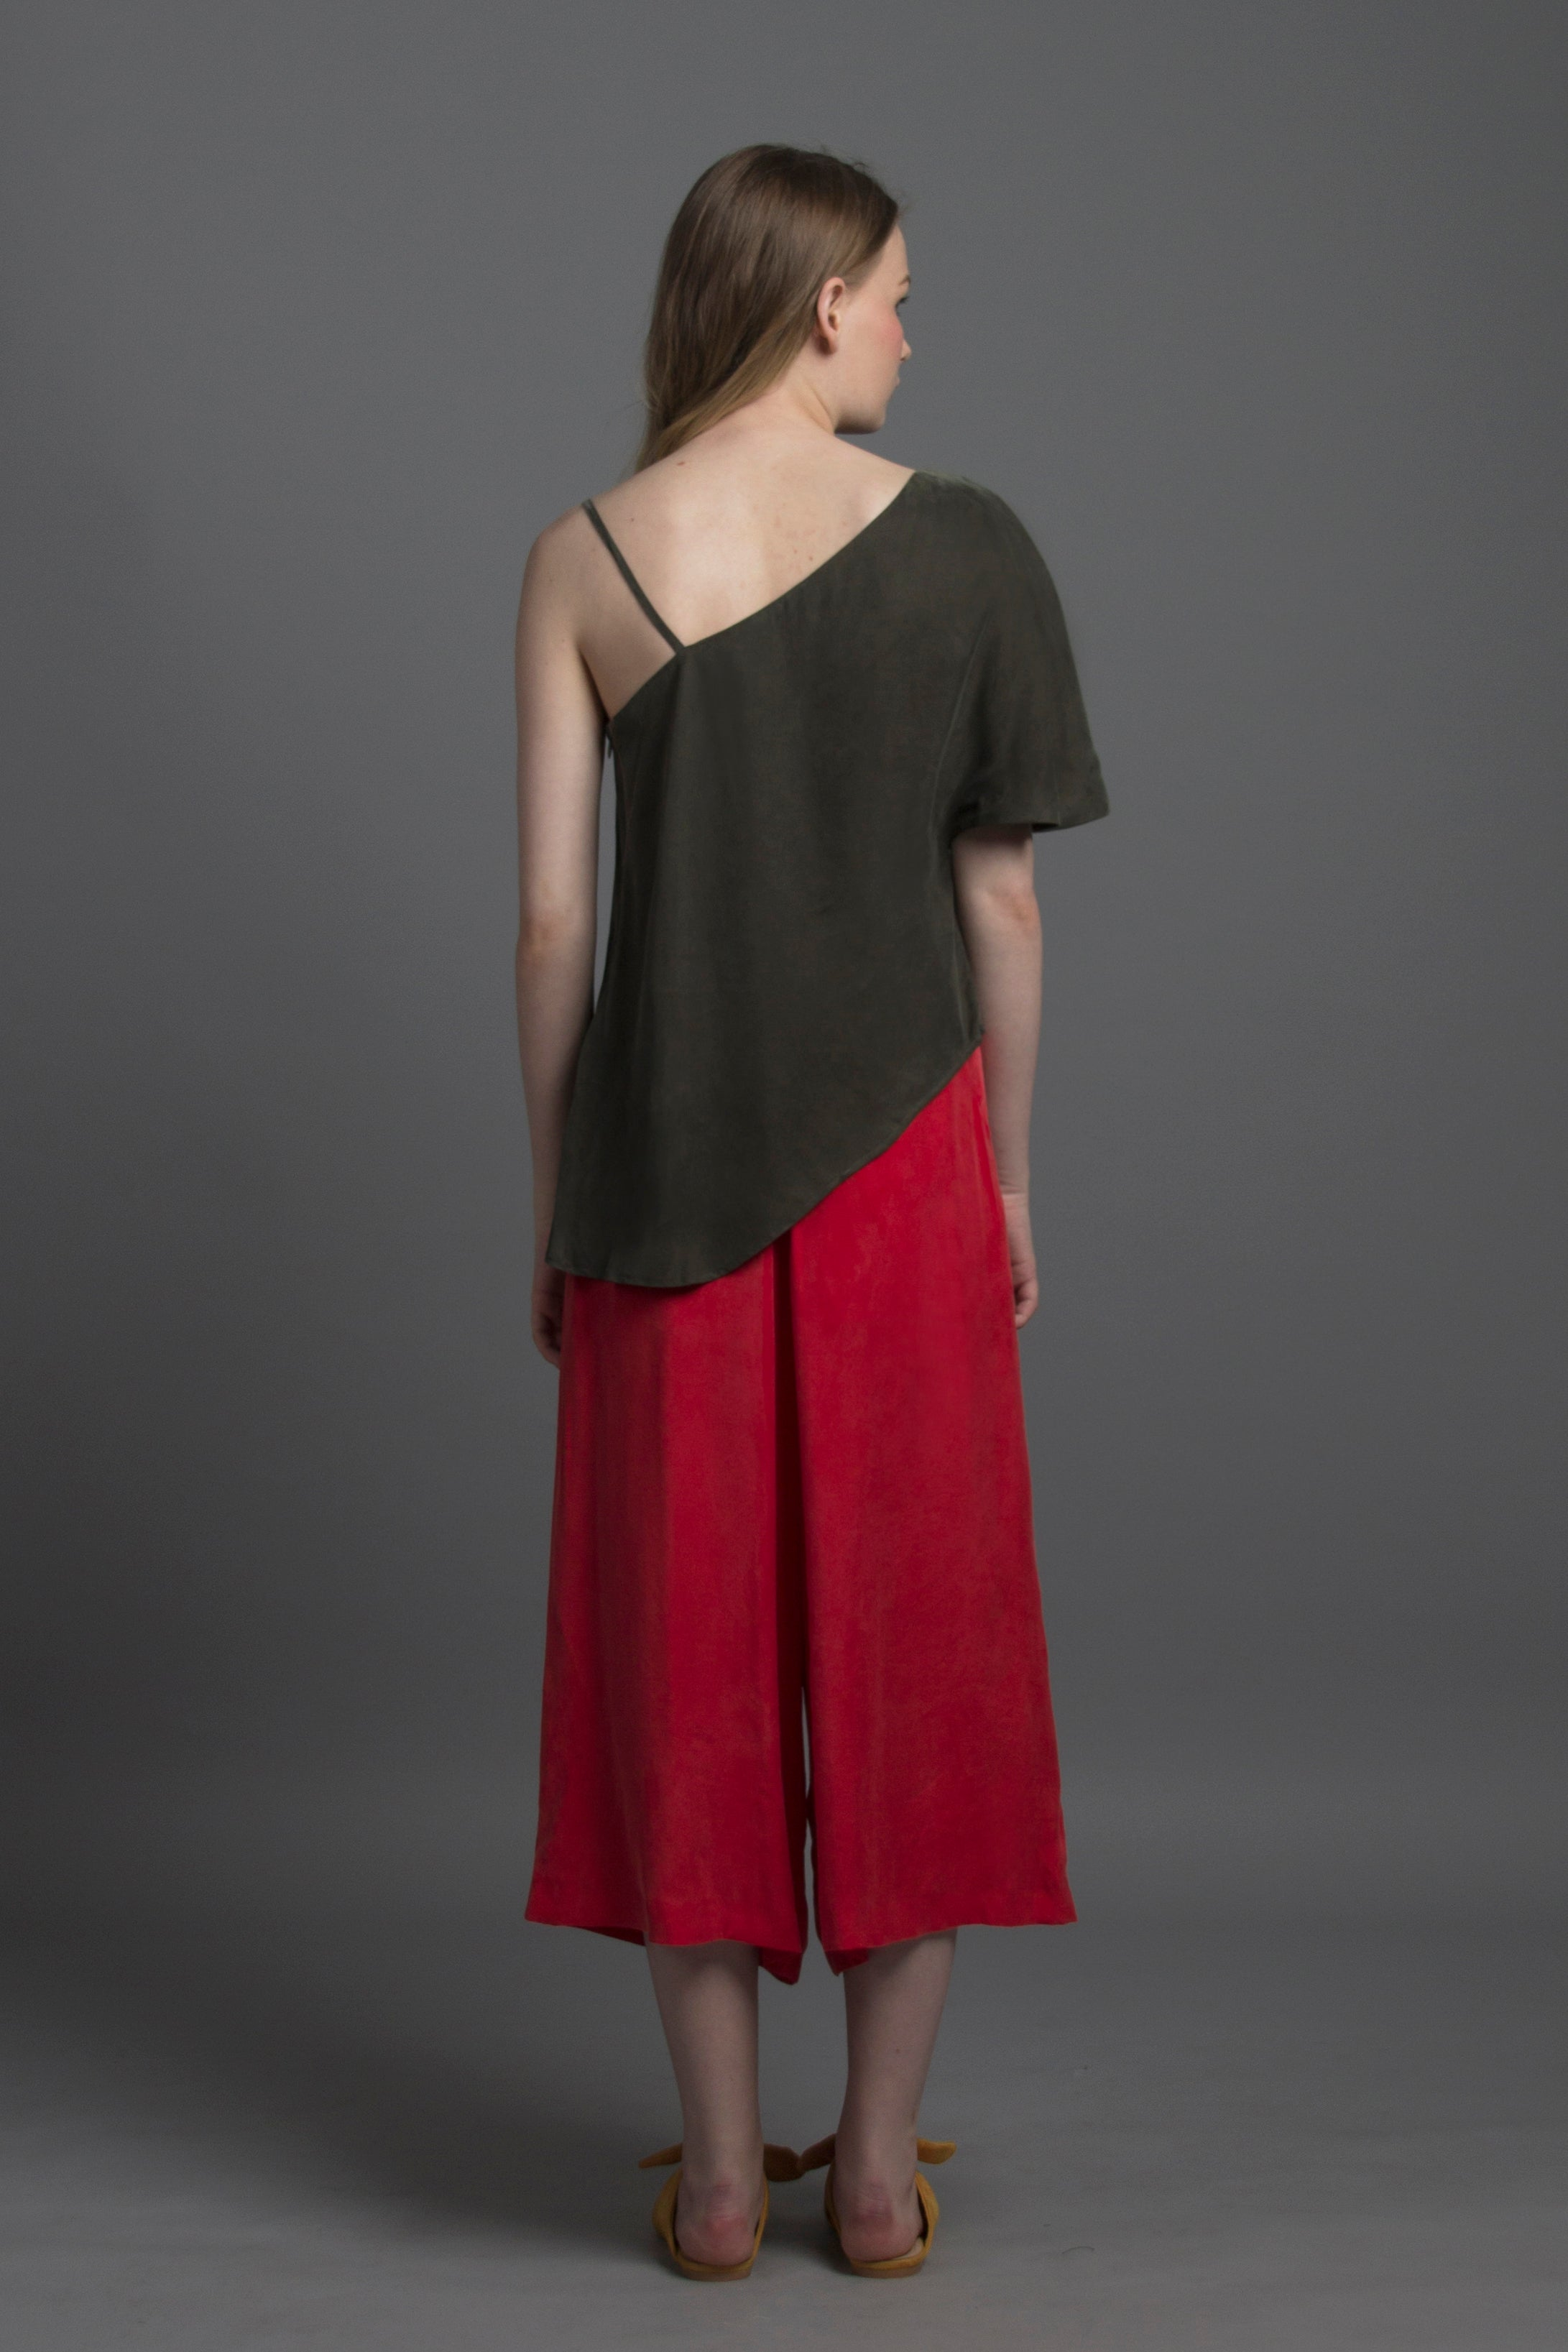 Asymmetrical Spag Top (Olive)